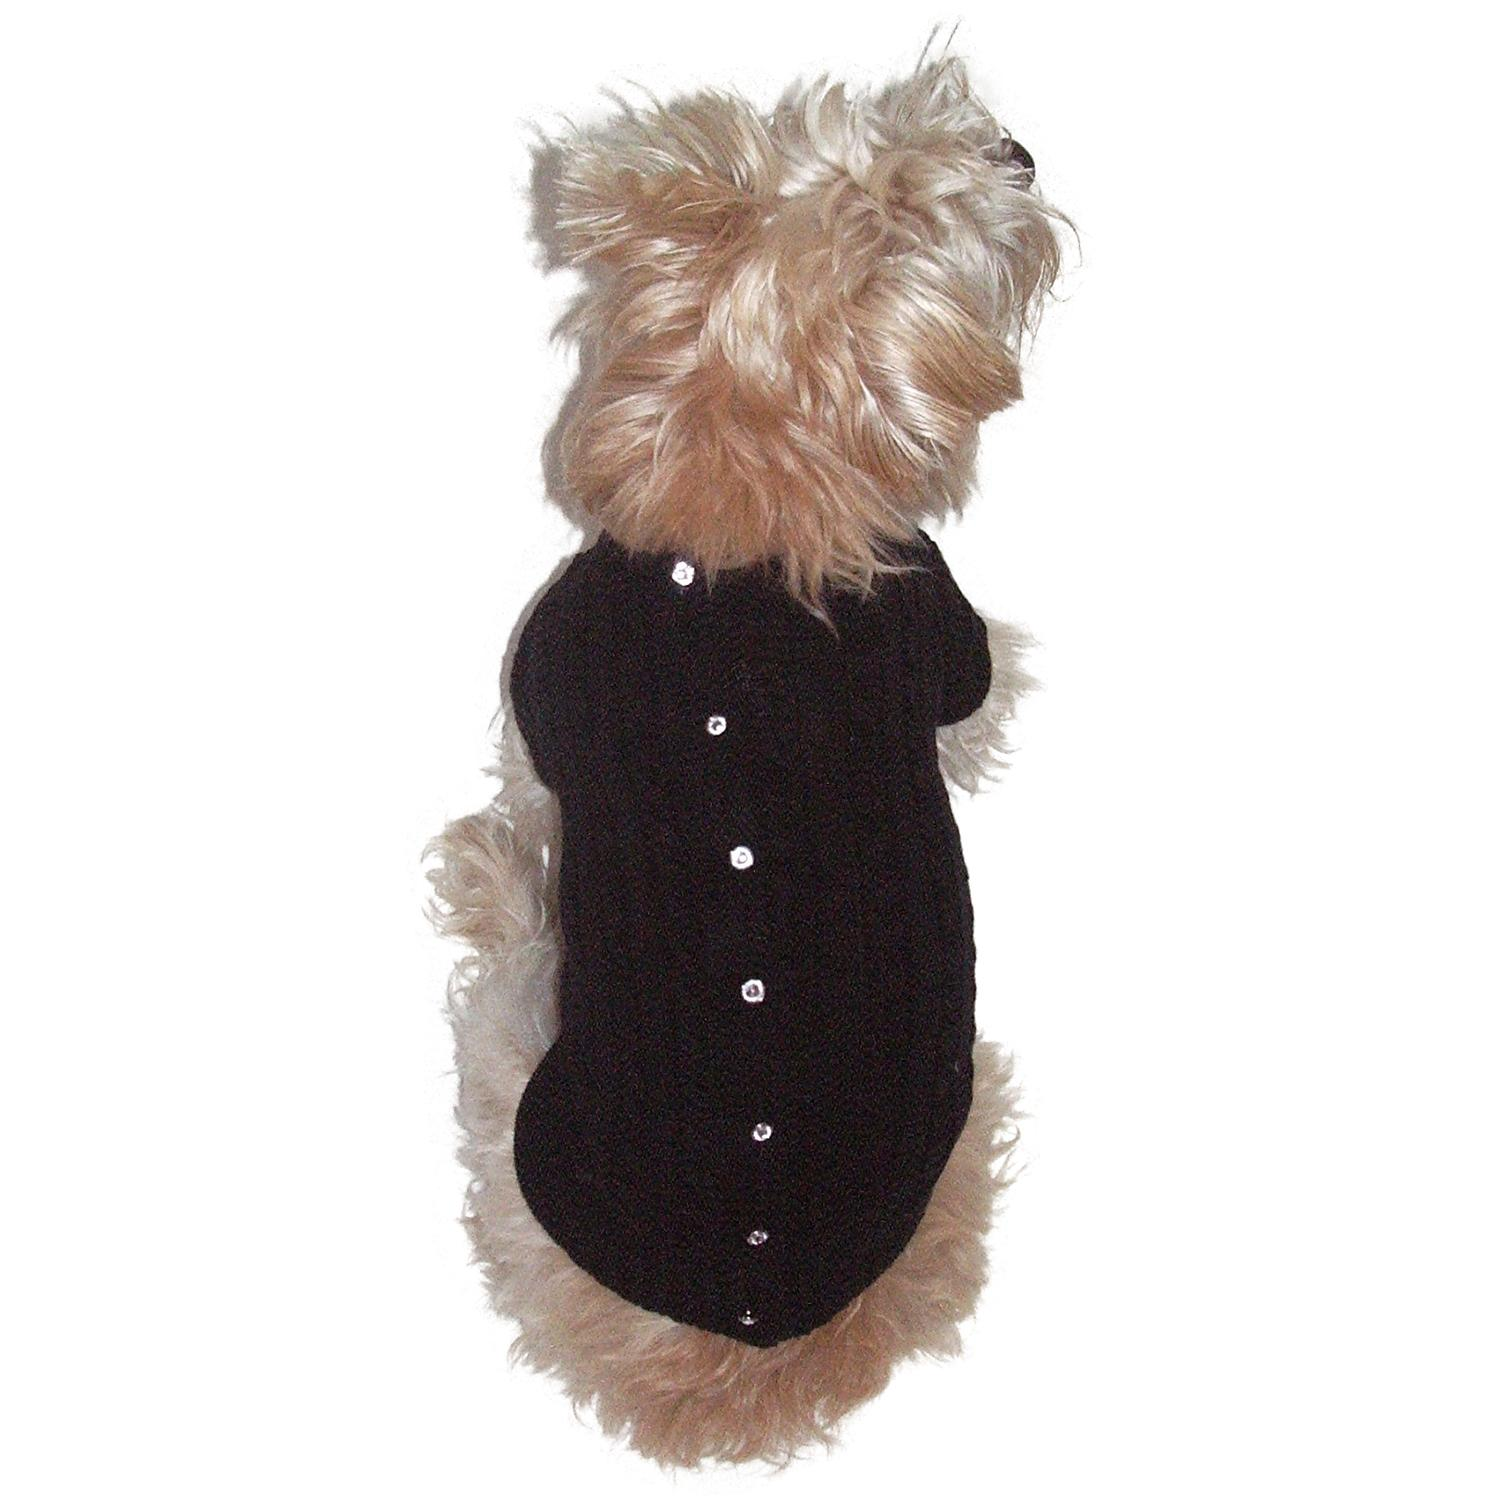 Cannes Cardigan Dog Sweater by The Dog Squad - Black